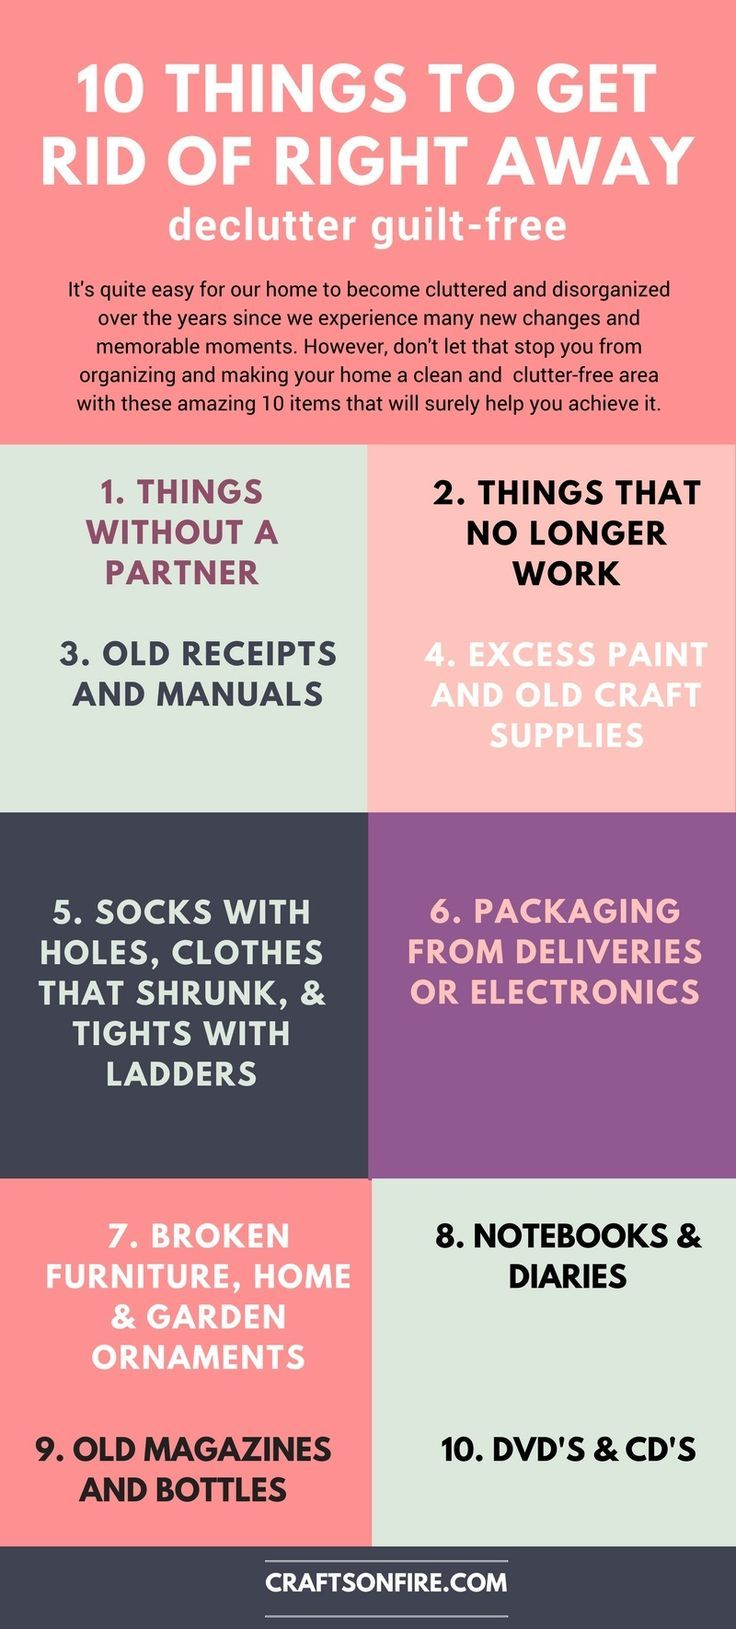 262 best declutter images on pinterest minimalism for Best way to get rid of clutter